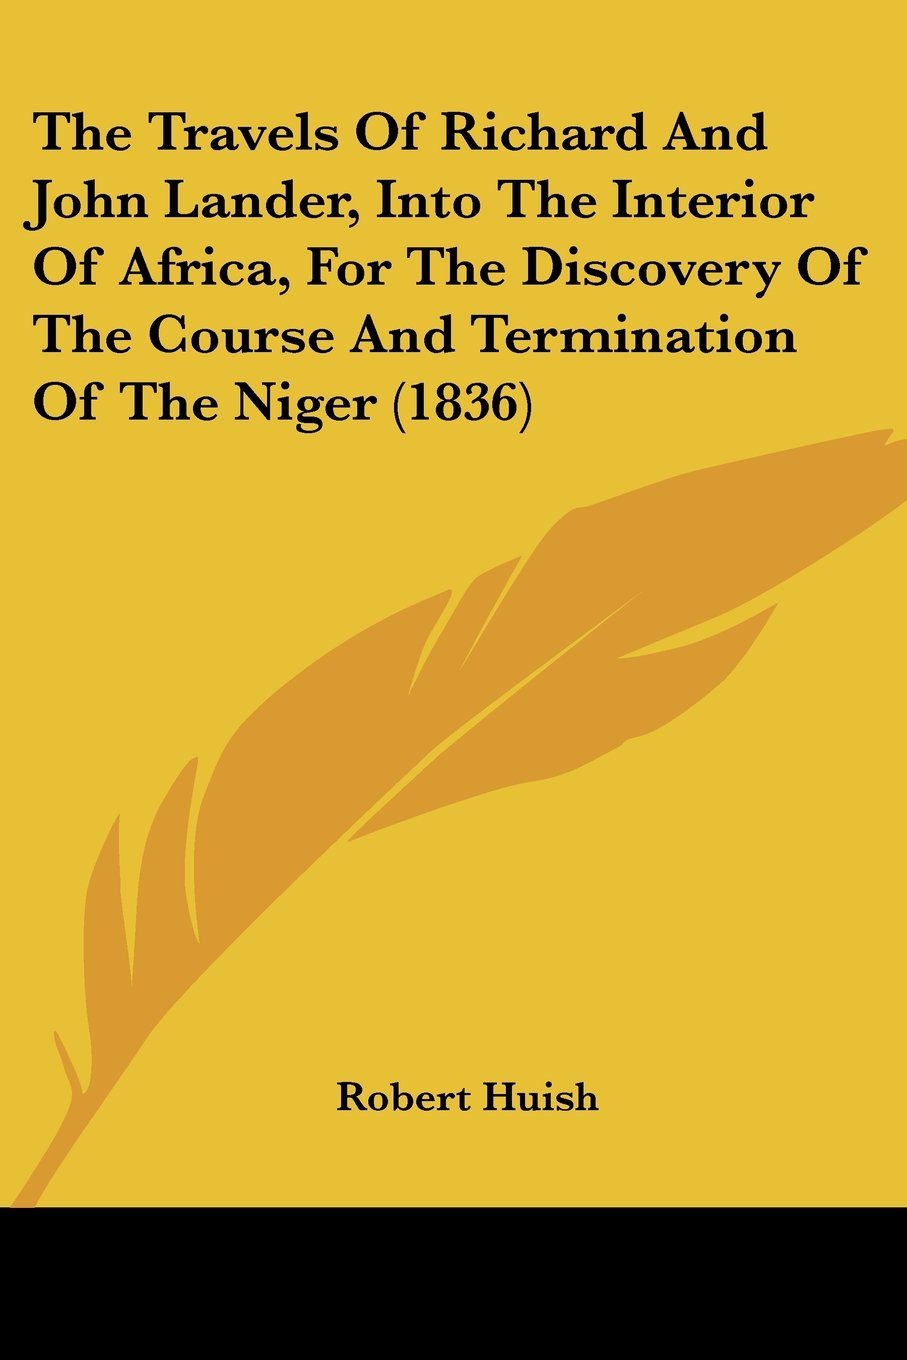 Read Online The Travels Of Richard And John Lander, Into The Interior Of Africa, For The Discovery Of The Course And Termination Of The Niger (1836) ebook